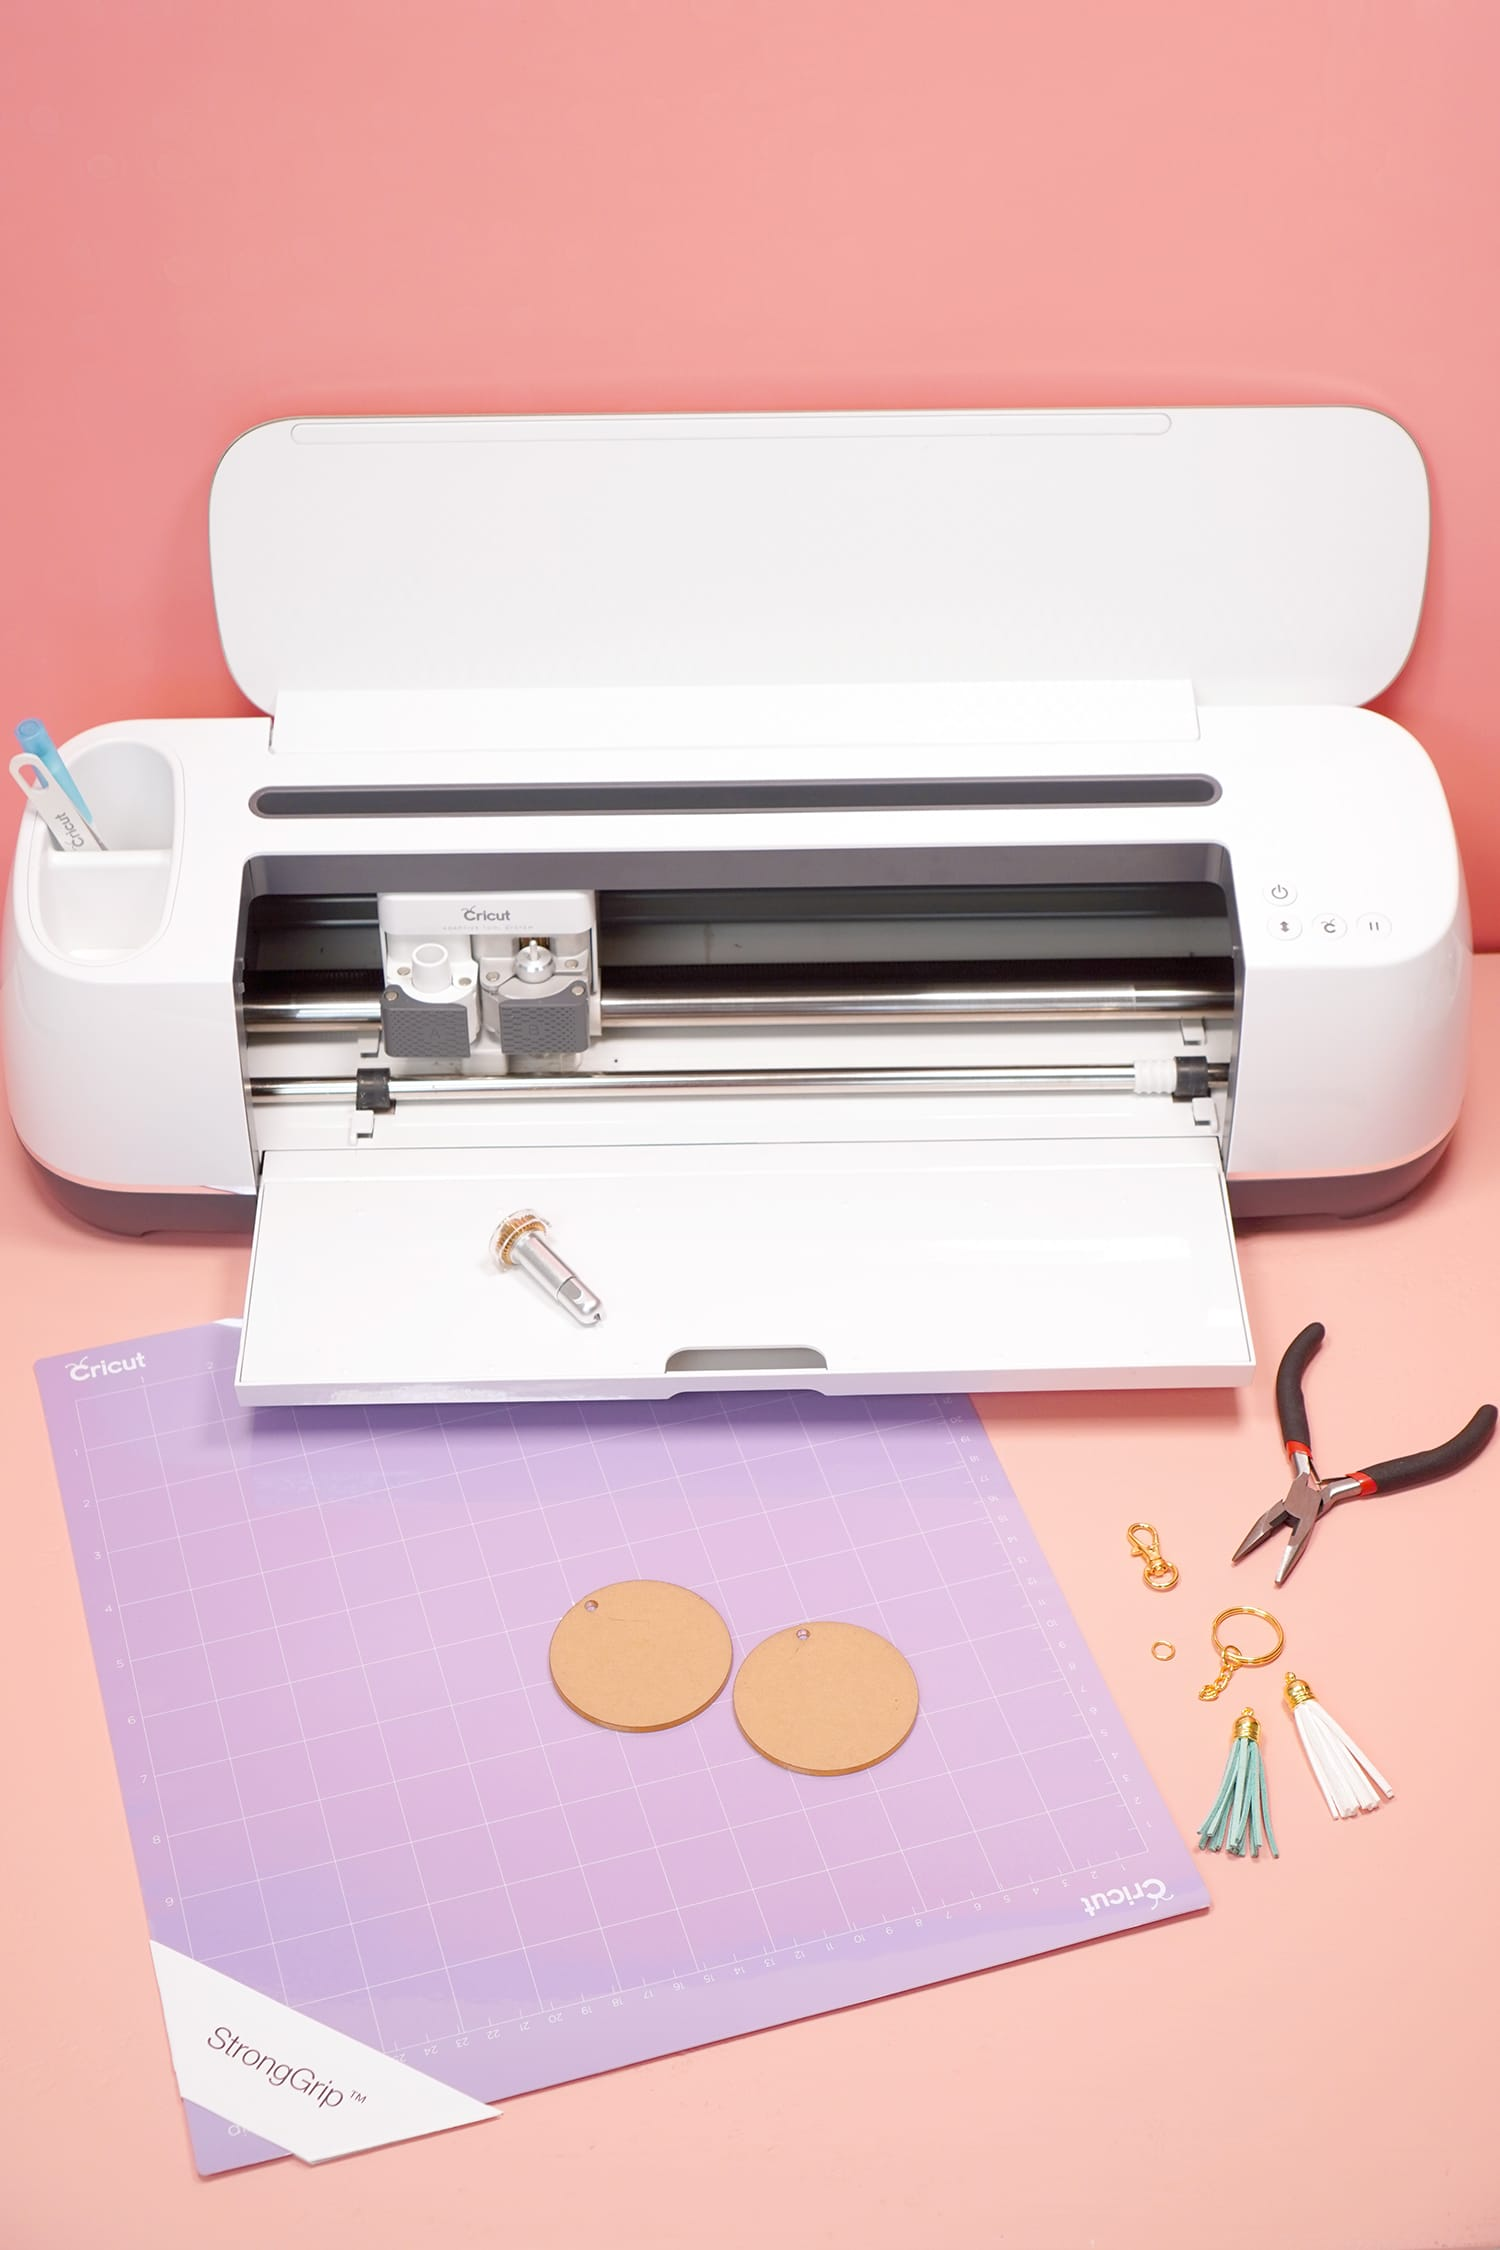 Cricut Maker machine and supplies needed to make an engraved acrylic keychain with the Cricut Engraving Tool